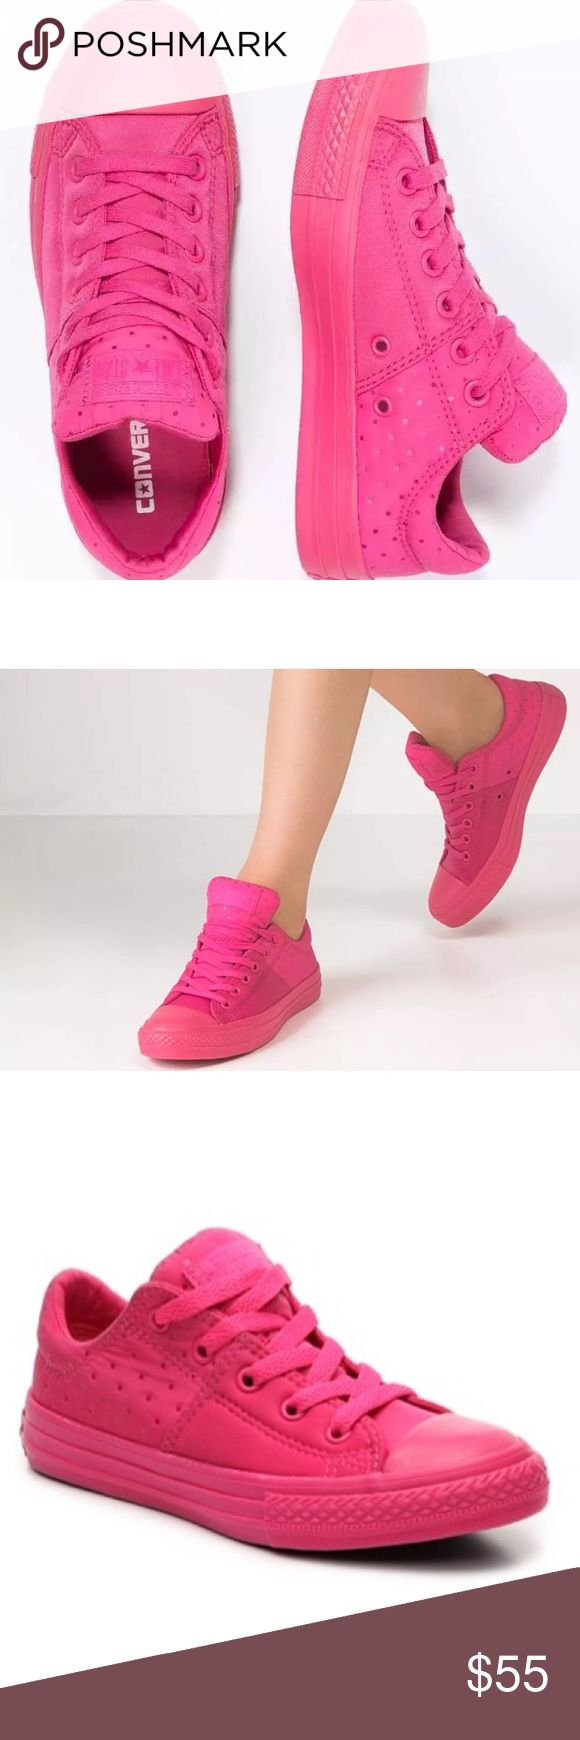 Converse size 6 pink Madison shoes Brand new without box Converse Shoes Sneakers